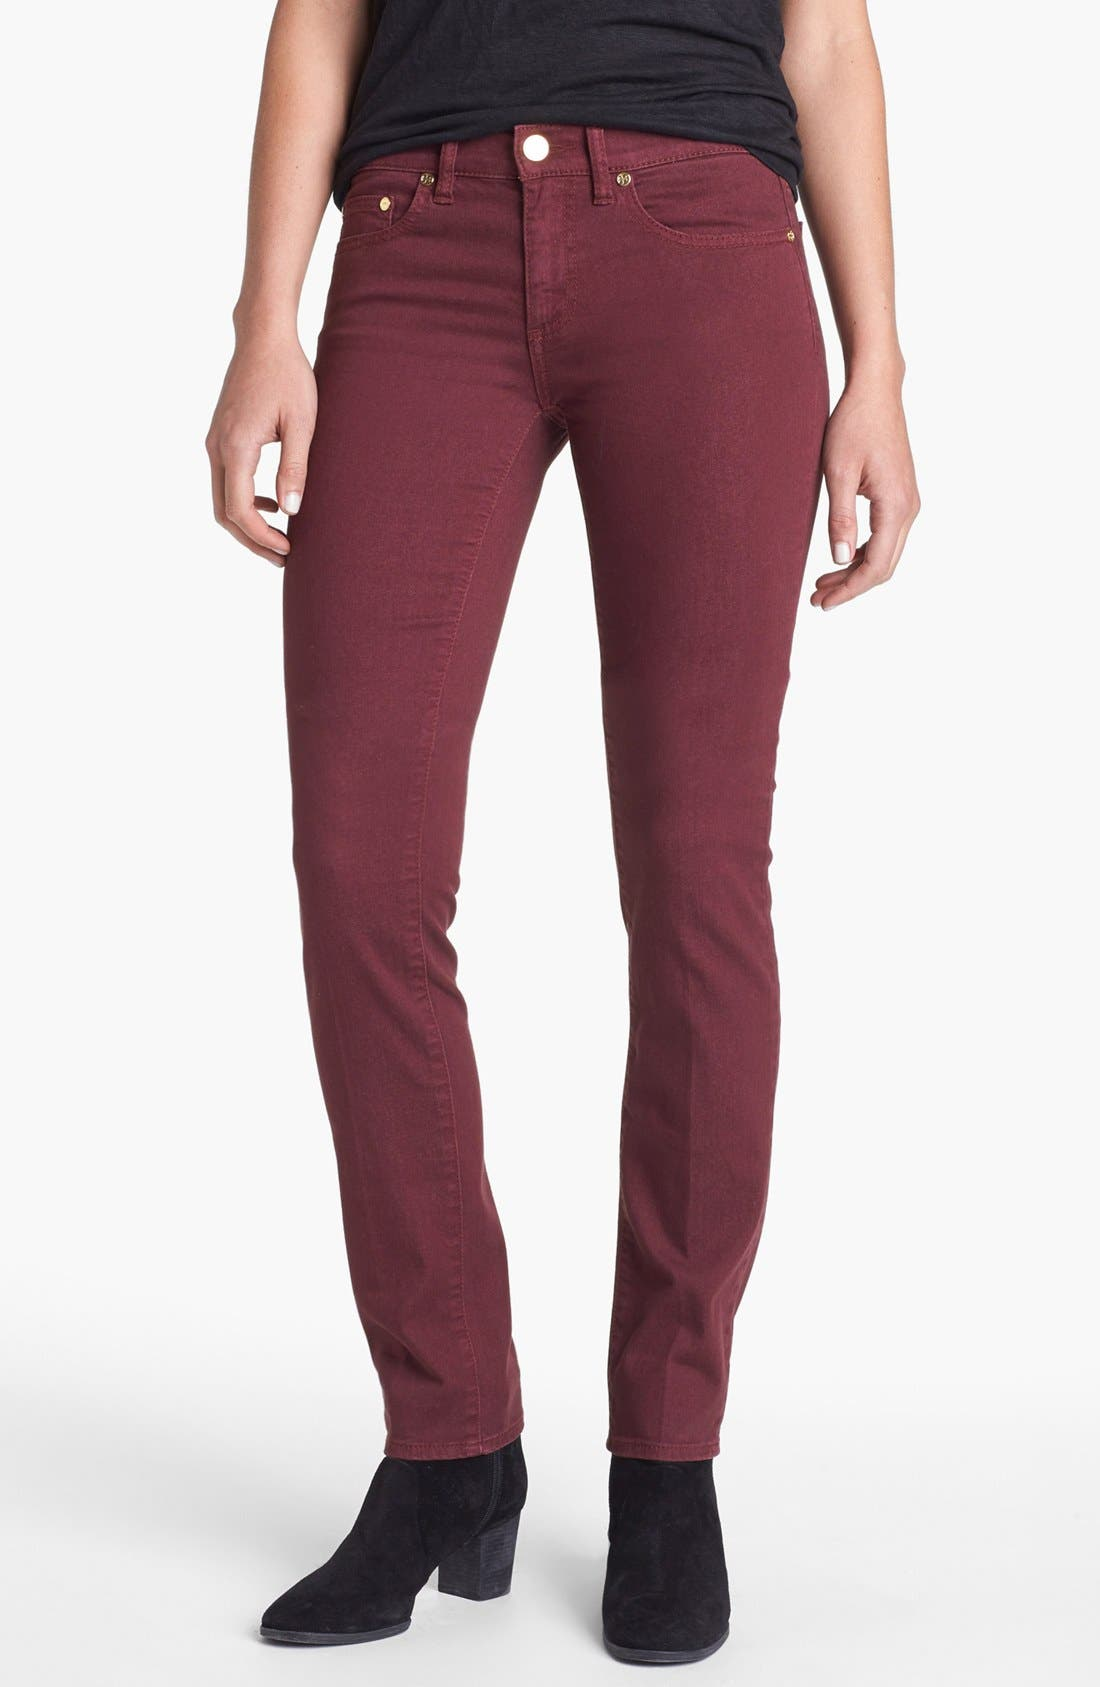 Alternate Image 1 Selected - Tory Burch 'Ivy' Colored Super Skinny Jeans (Dark Plum)